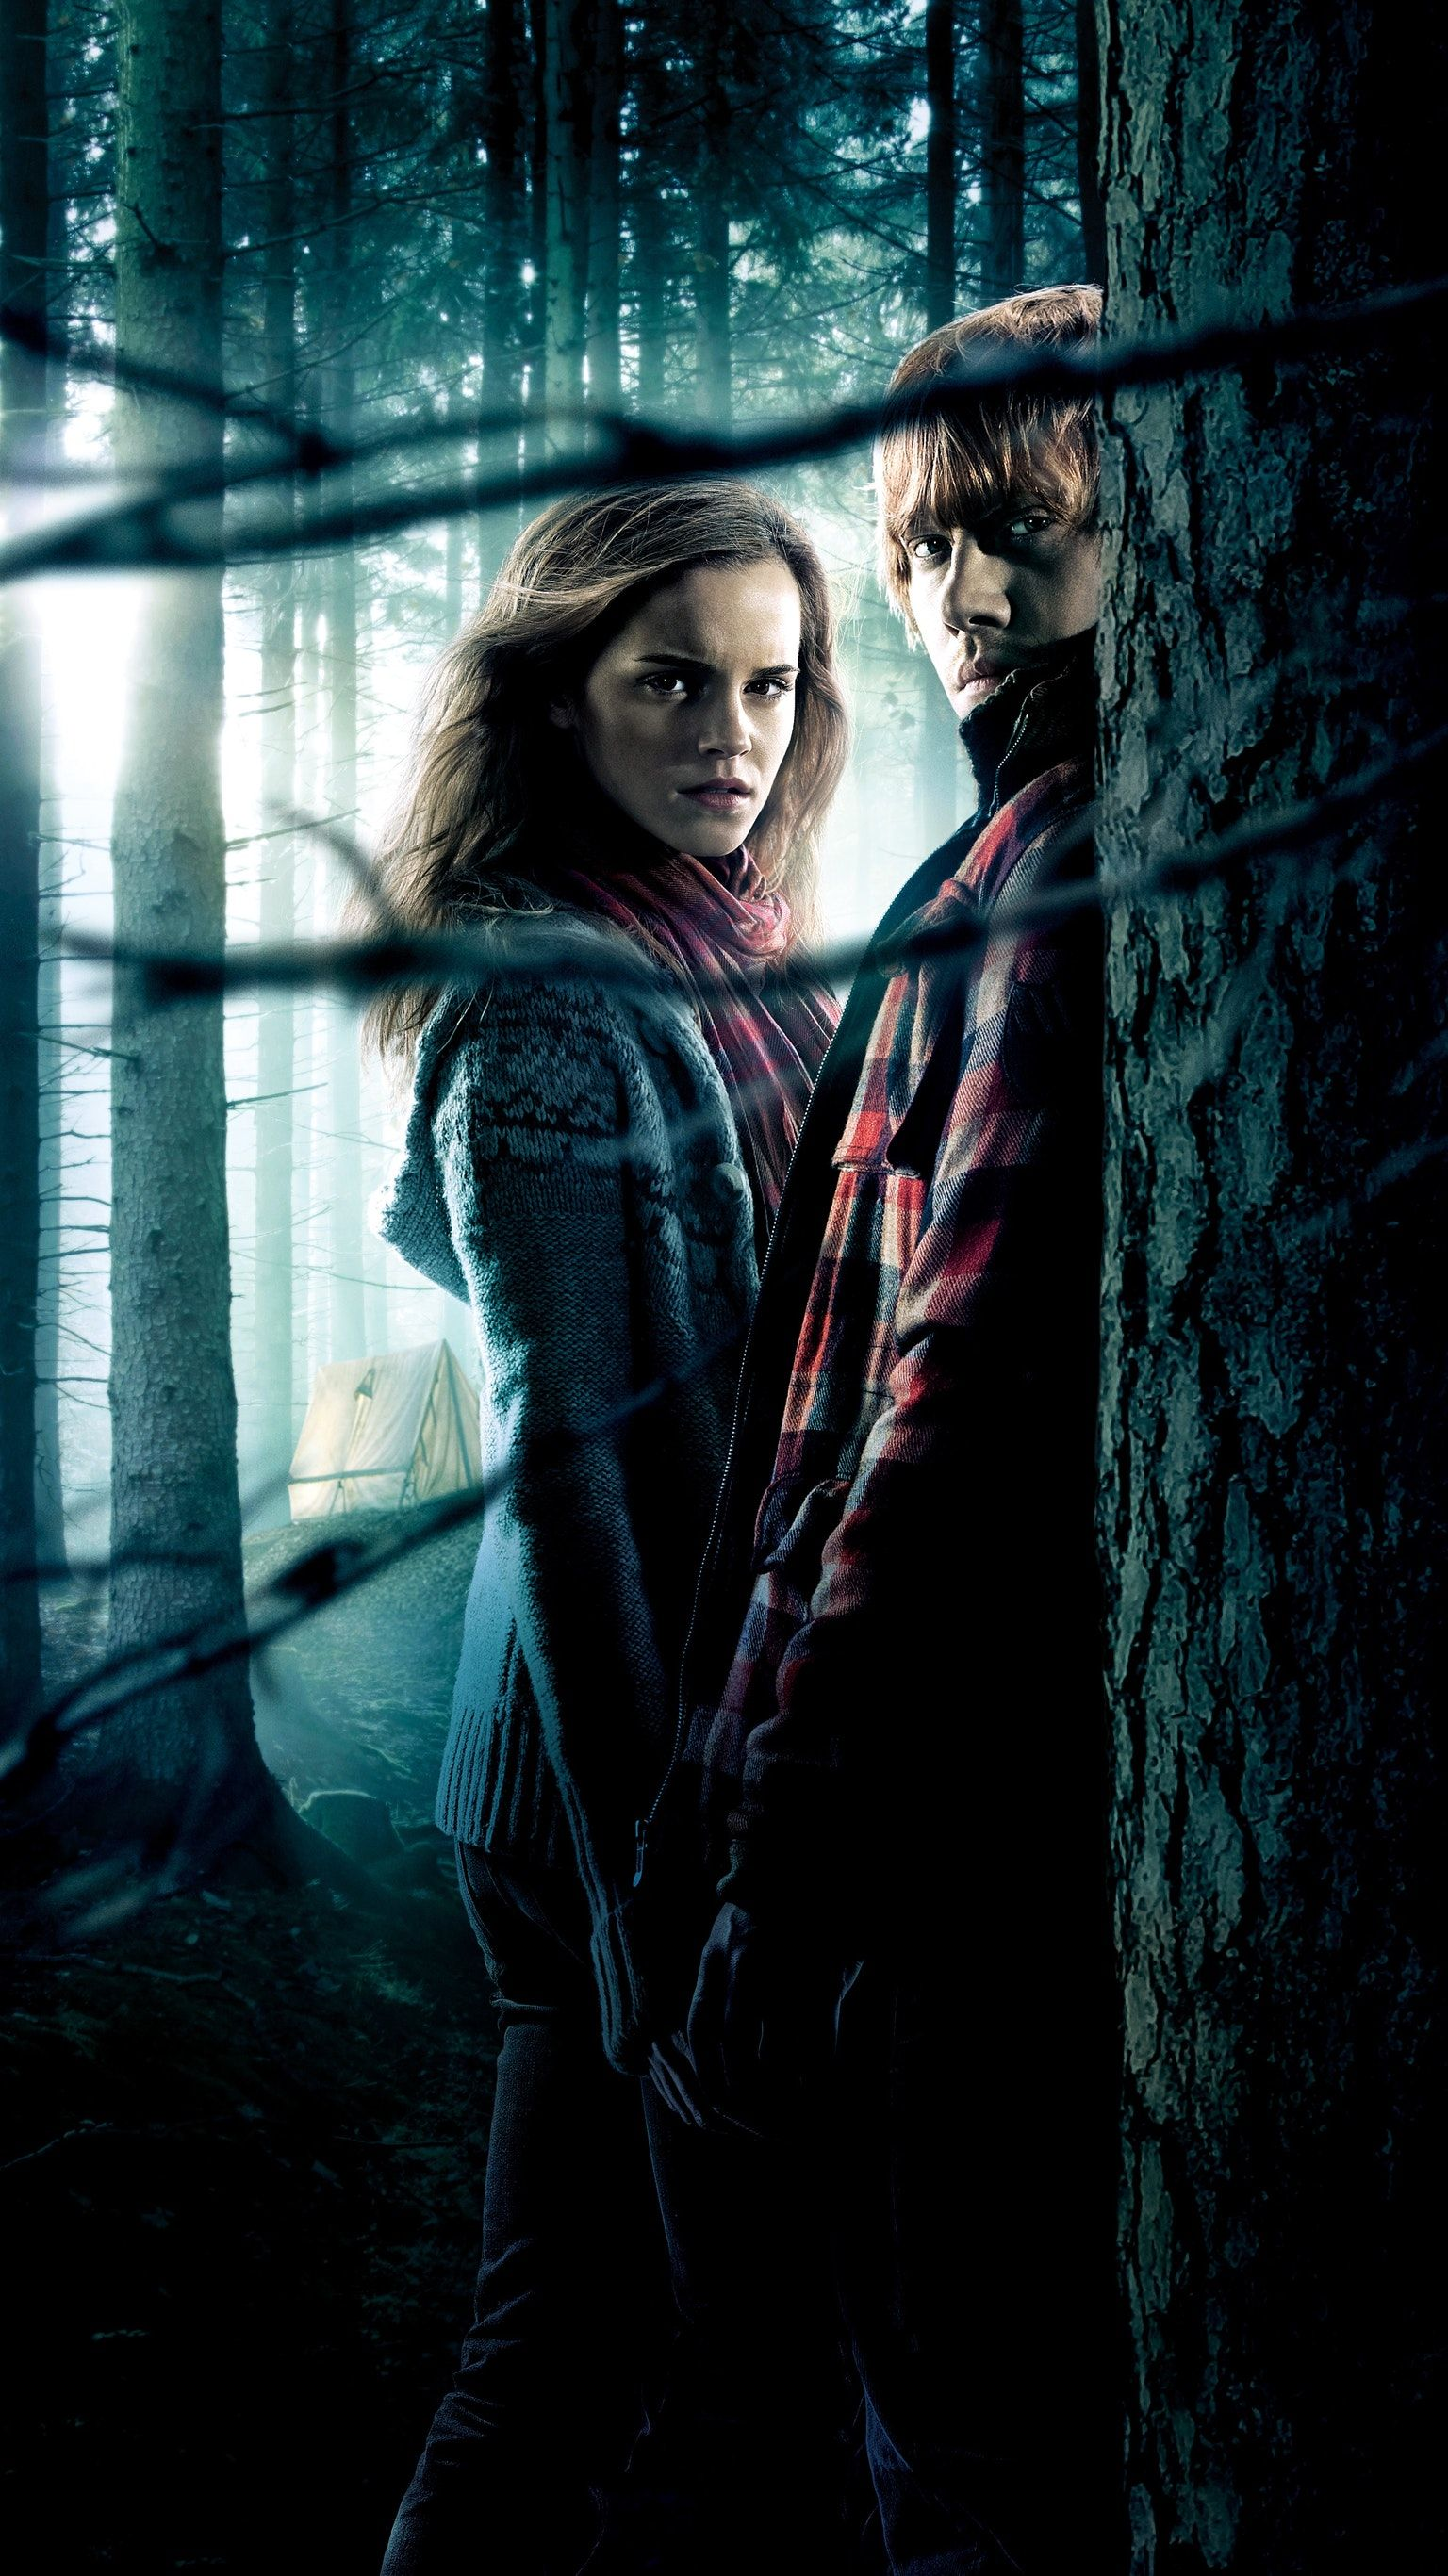 Harry Potter And The Deathly Hallows Part 1 2010 Phone Wallpaper